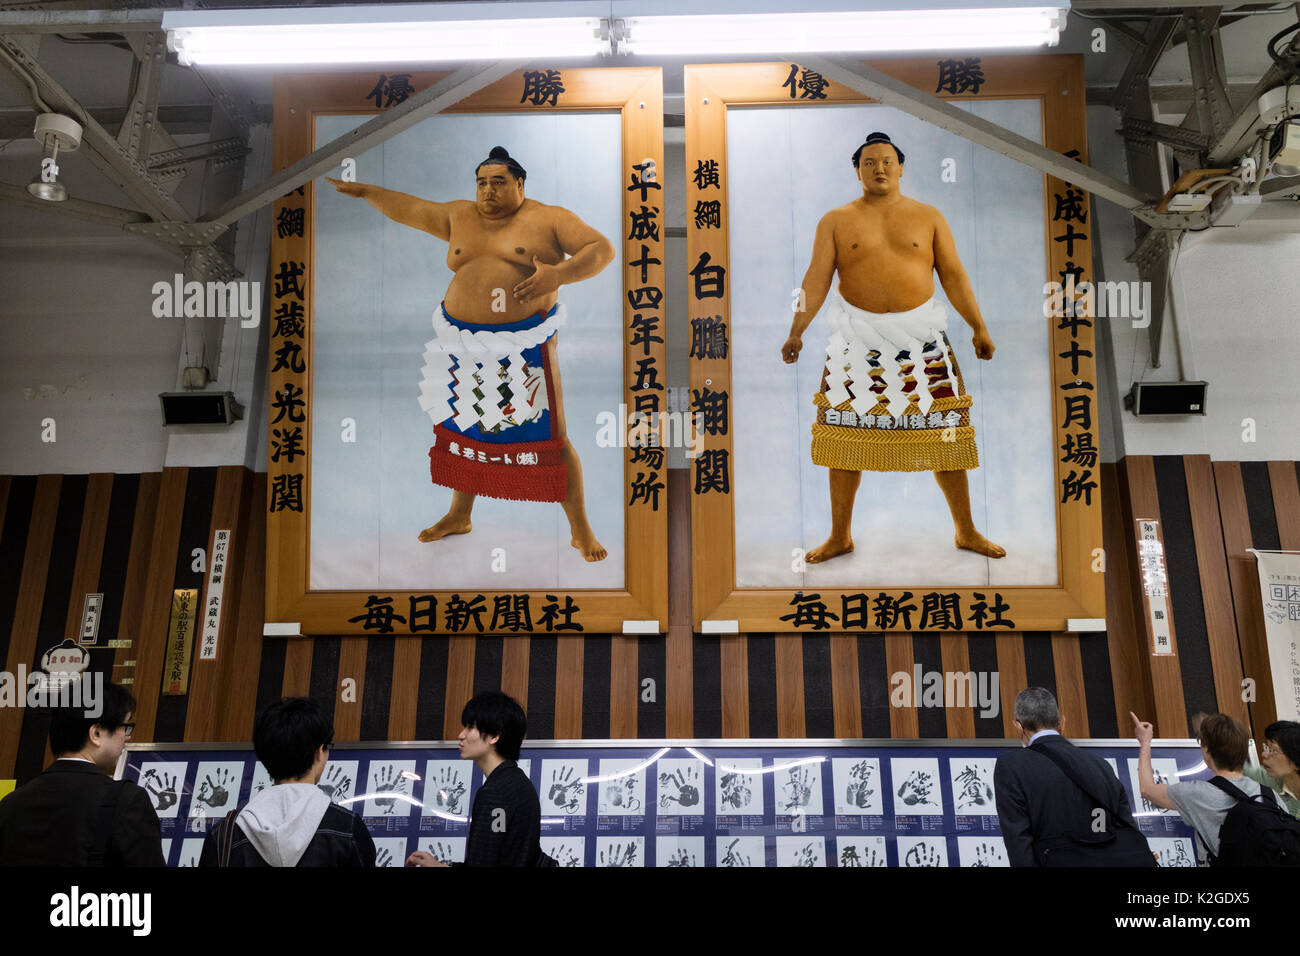 Tokyo, Japan -  May 13, 2017: Famous Sumo Wrestlers photo's and handprints in Sumida train station - Stock Image